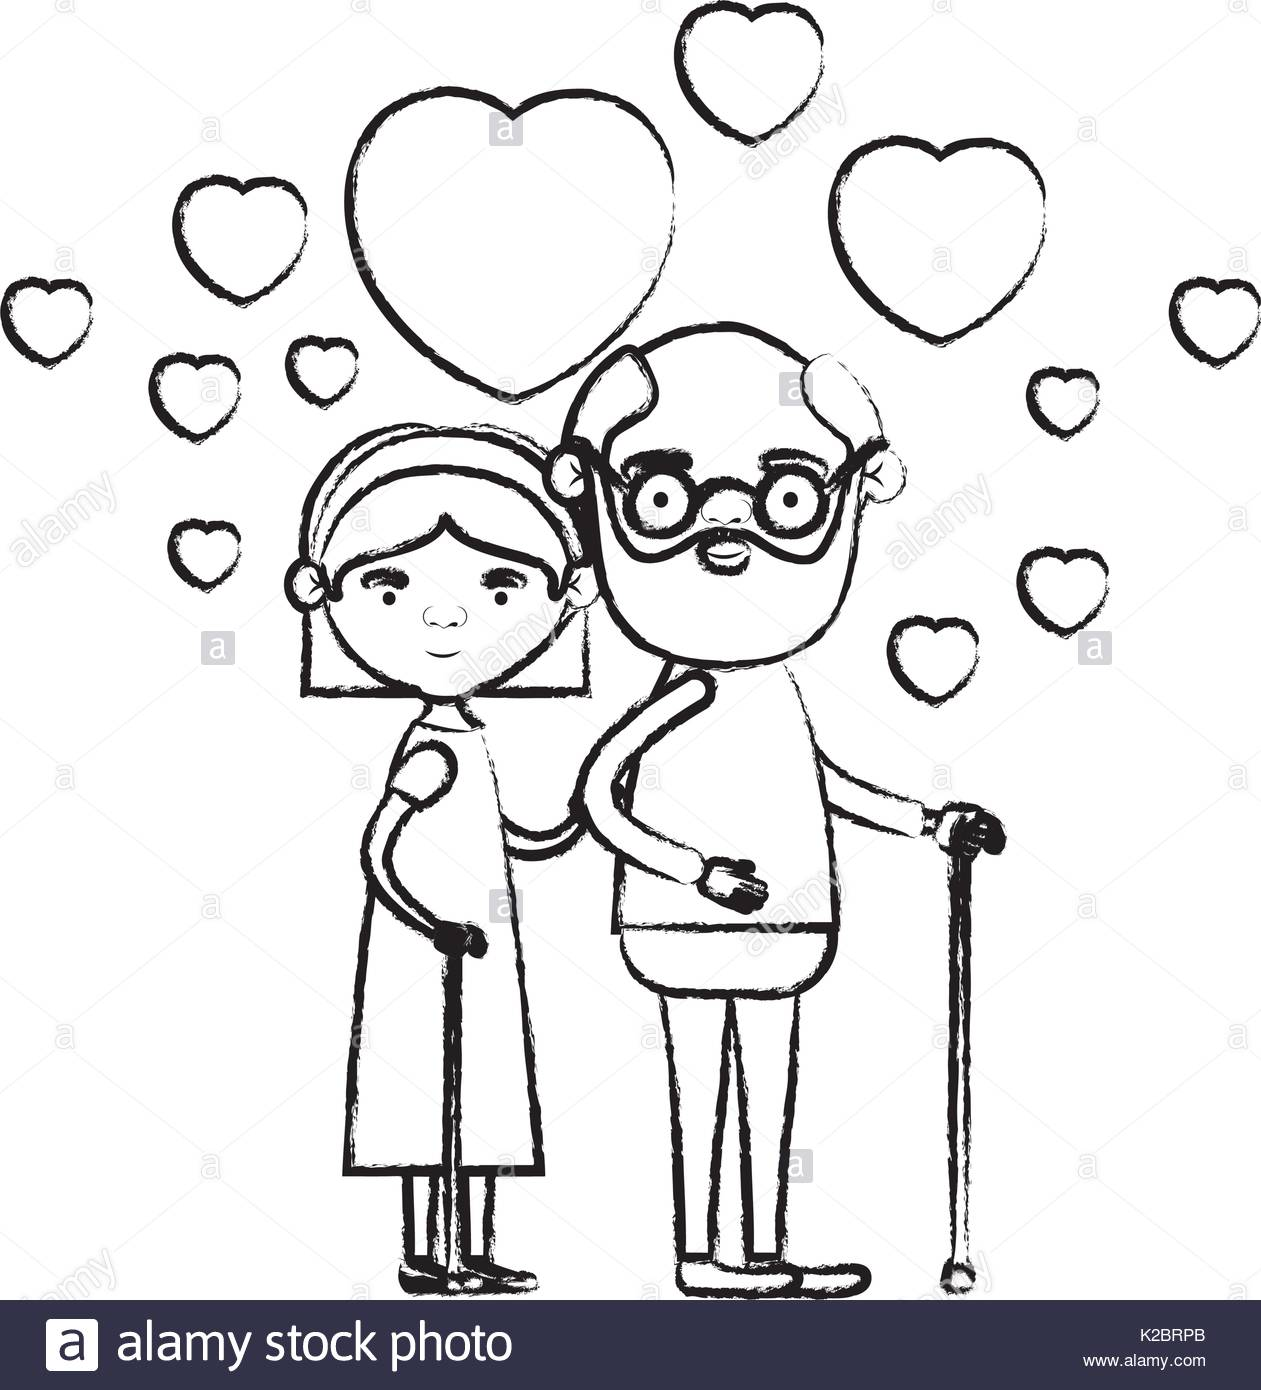 1261x1390 Blurred Silhouette Of Caricature Full Body Elderly Couple Embraced